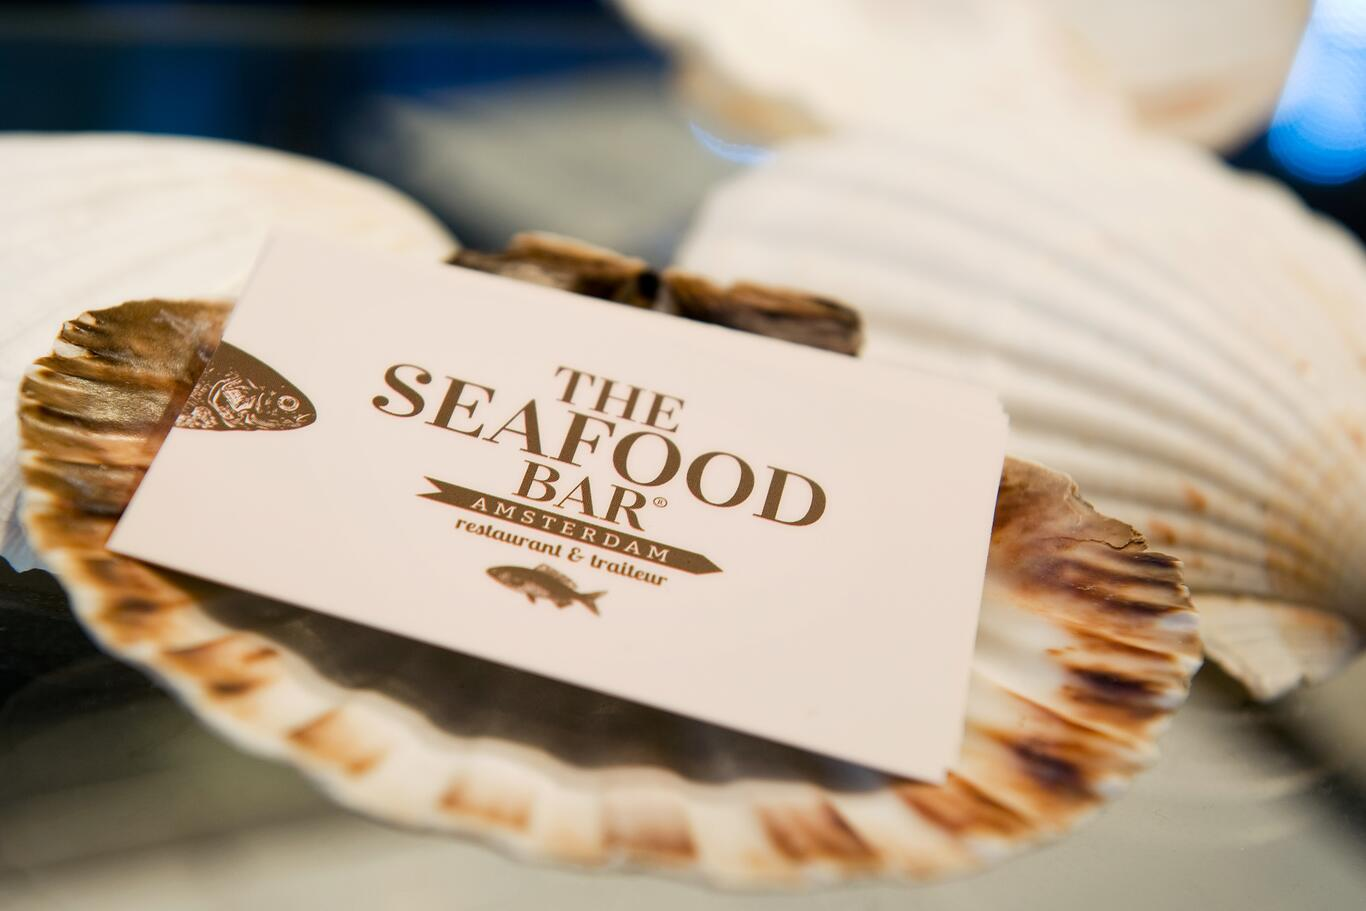 Business cards design for the seafood bar, Amsterdam